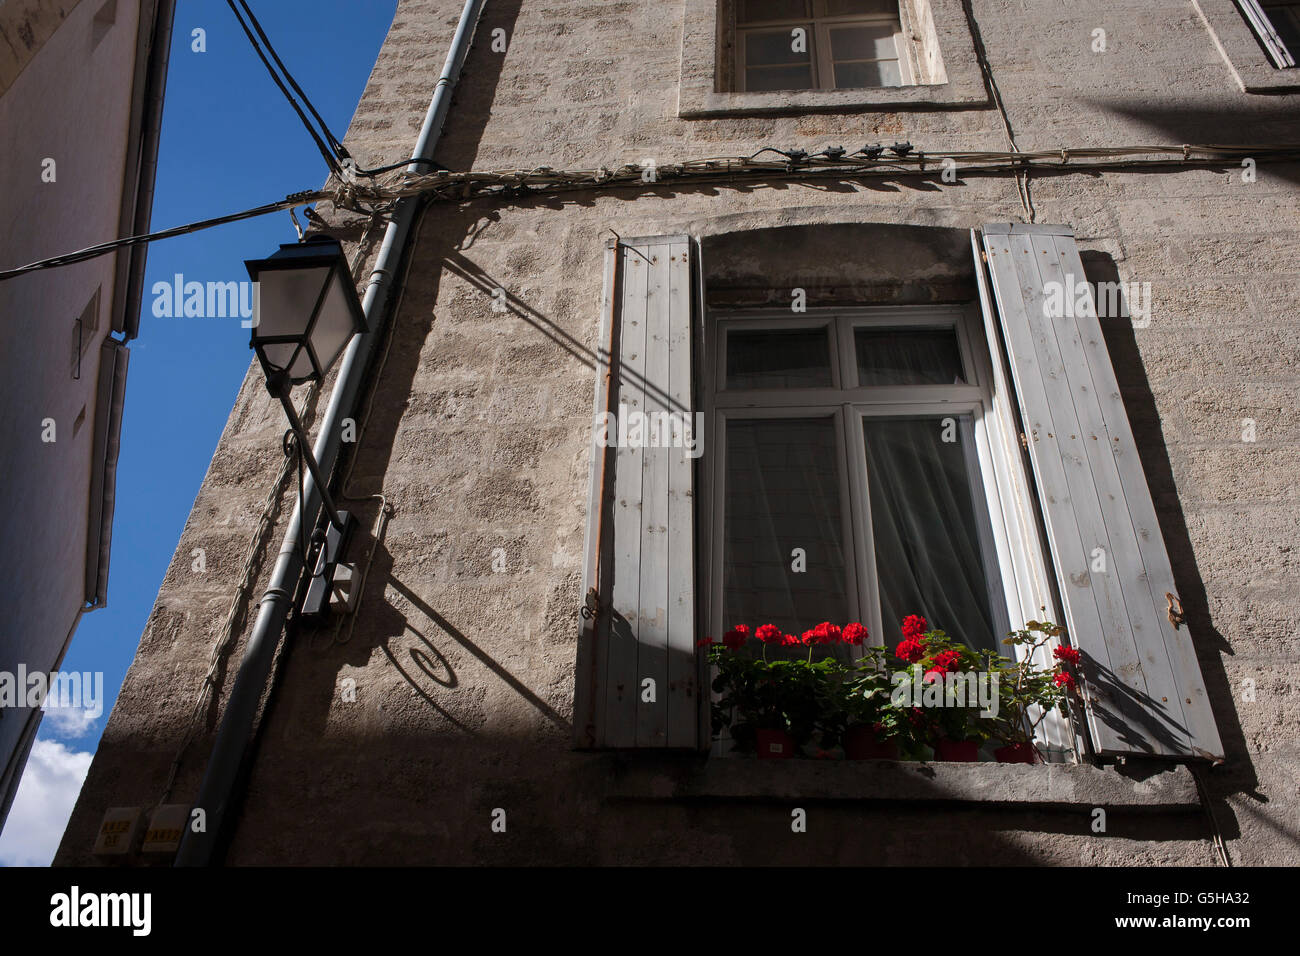 Red carnations in a window box of an apartment on a narrow street corner in old Montpellier, south of France. - Stock Image